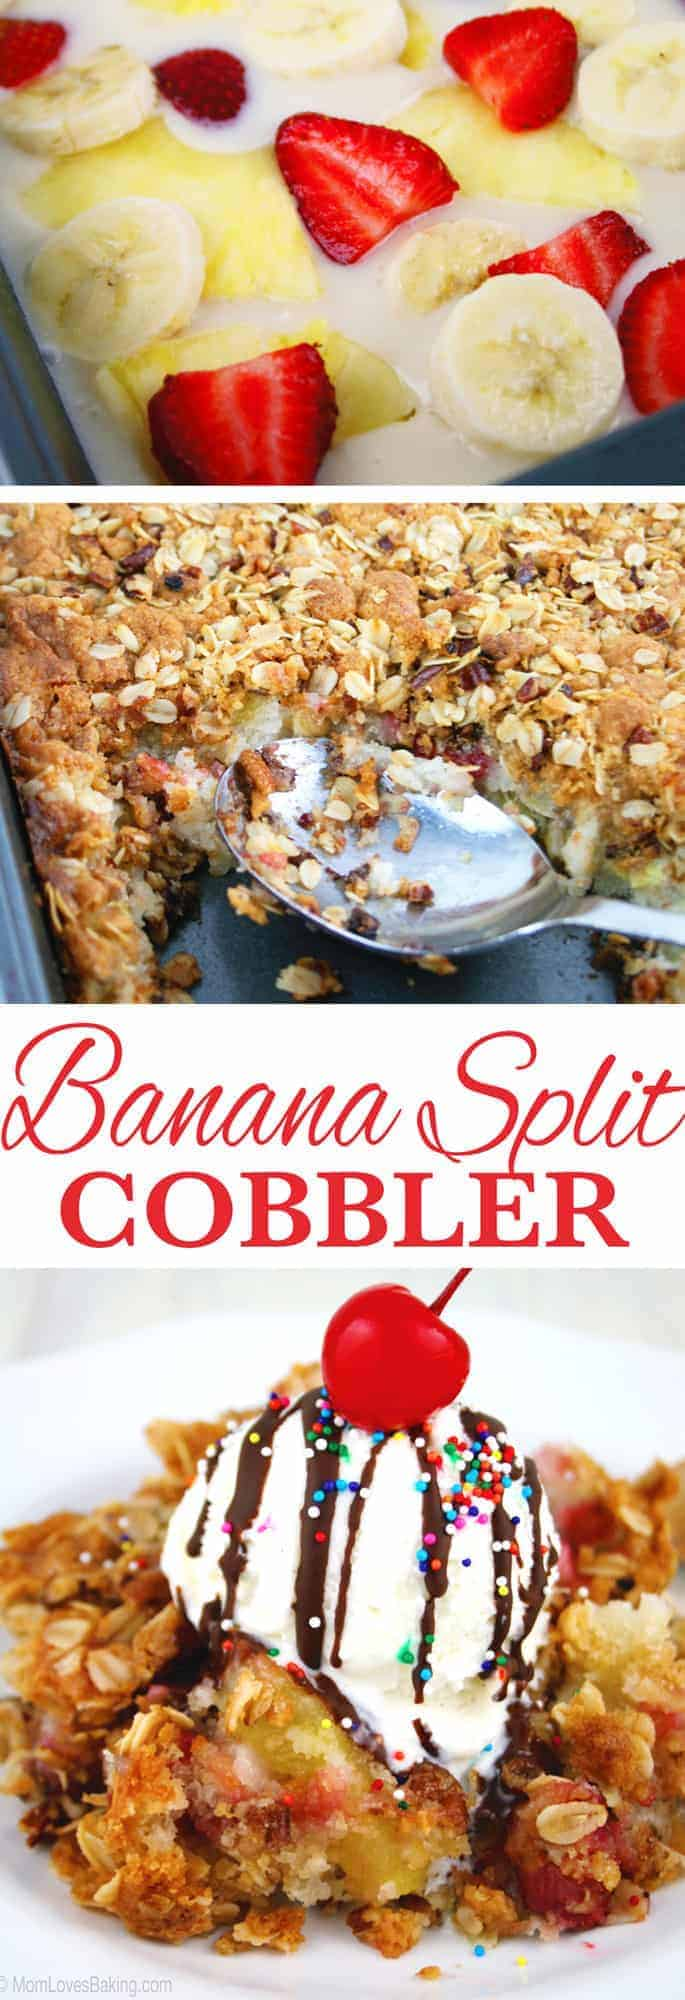 Banana Split Cobbler